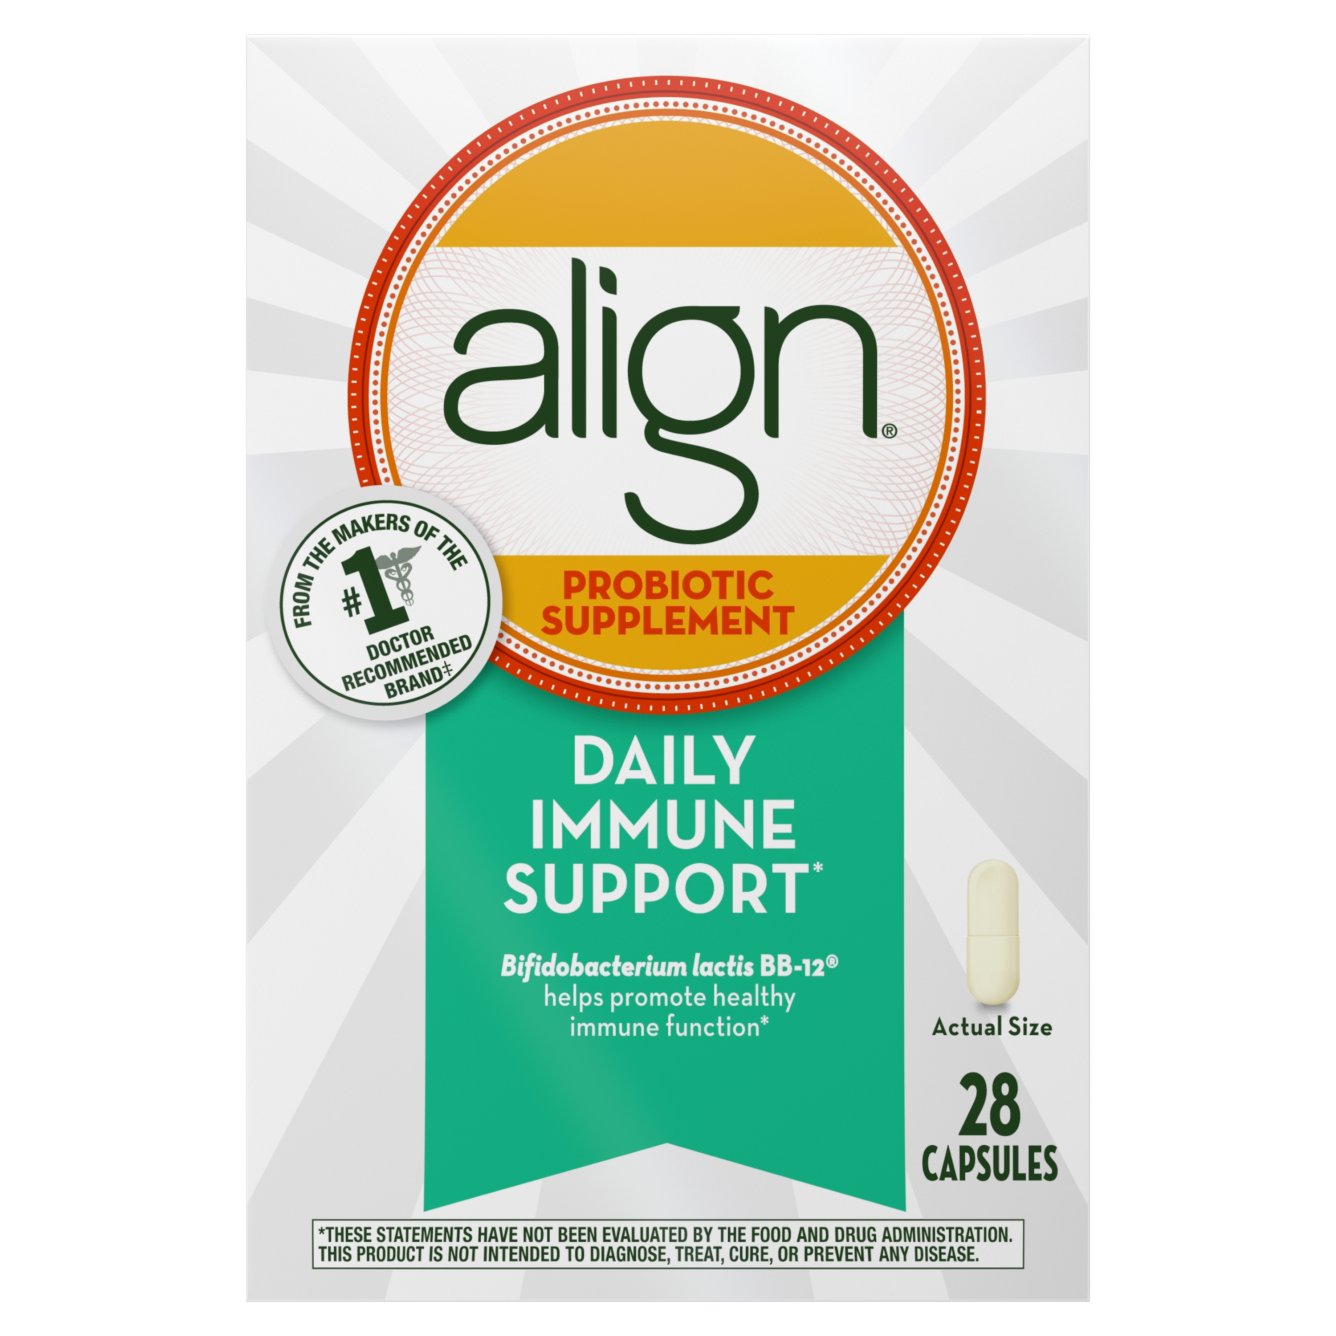 Align Daily Immune Support Probiotic Supplement